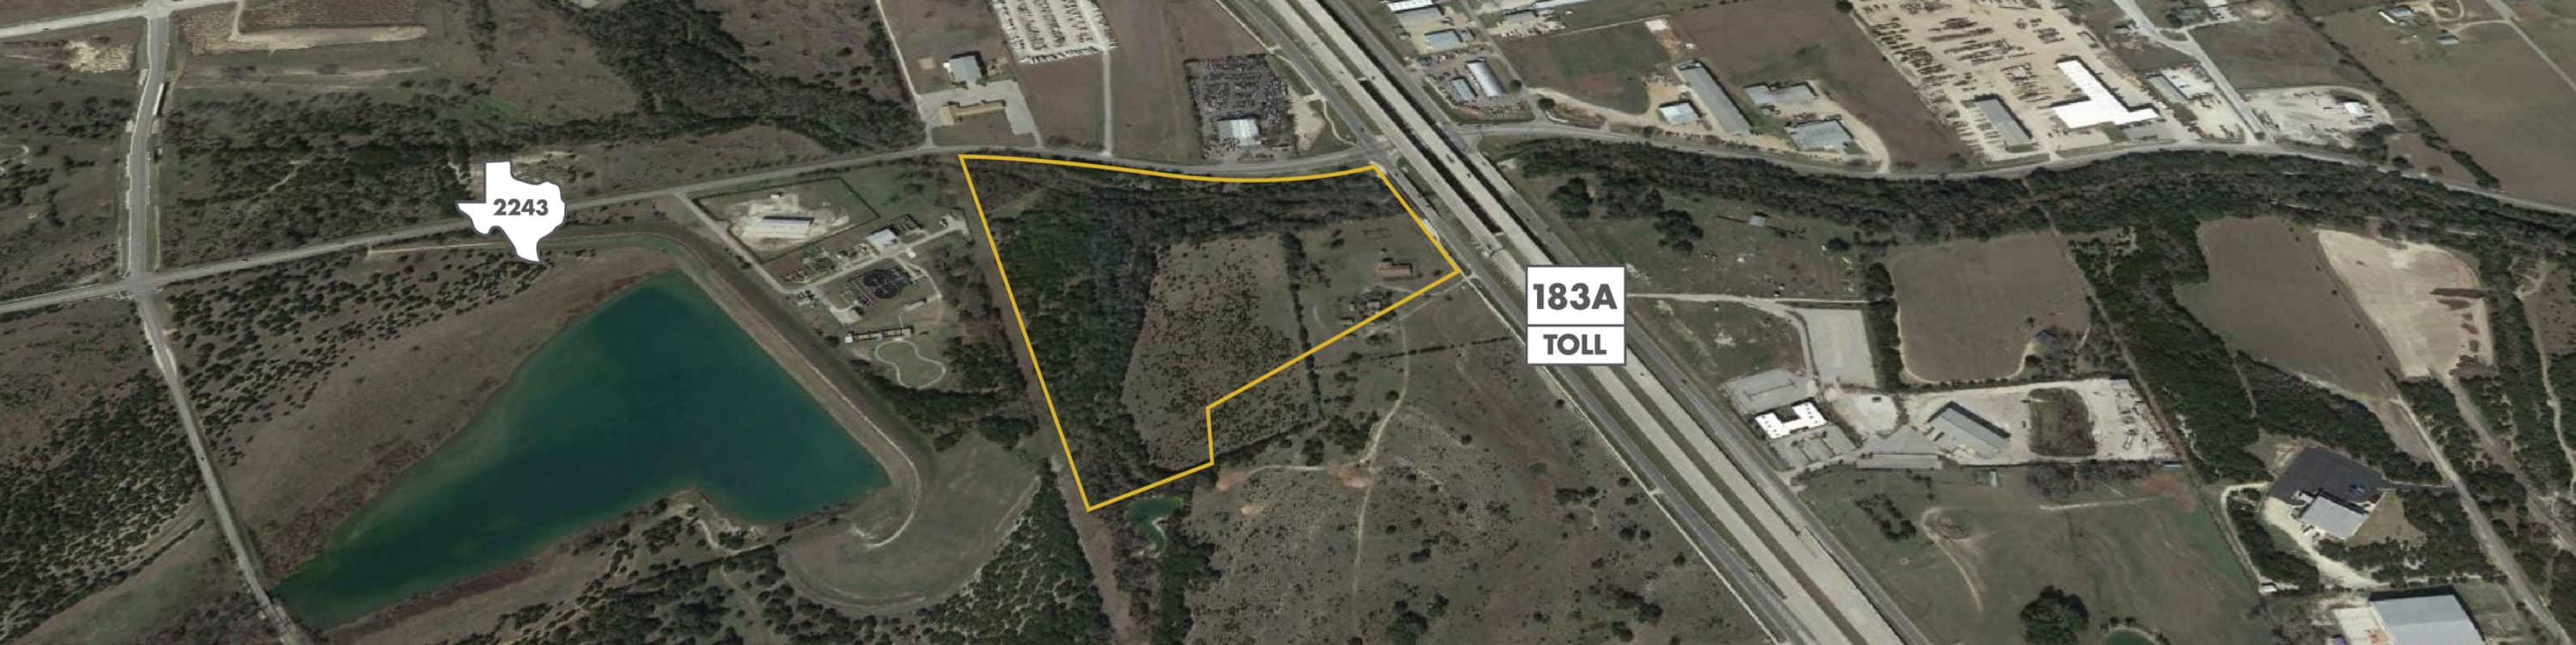 FM A Land For Sale In Leander Texas - 183a toll road map